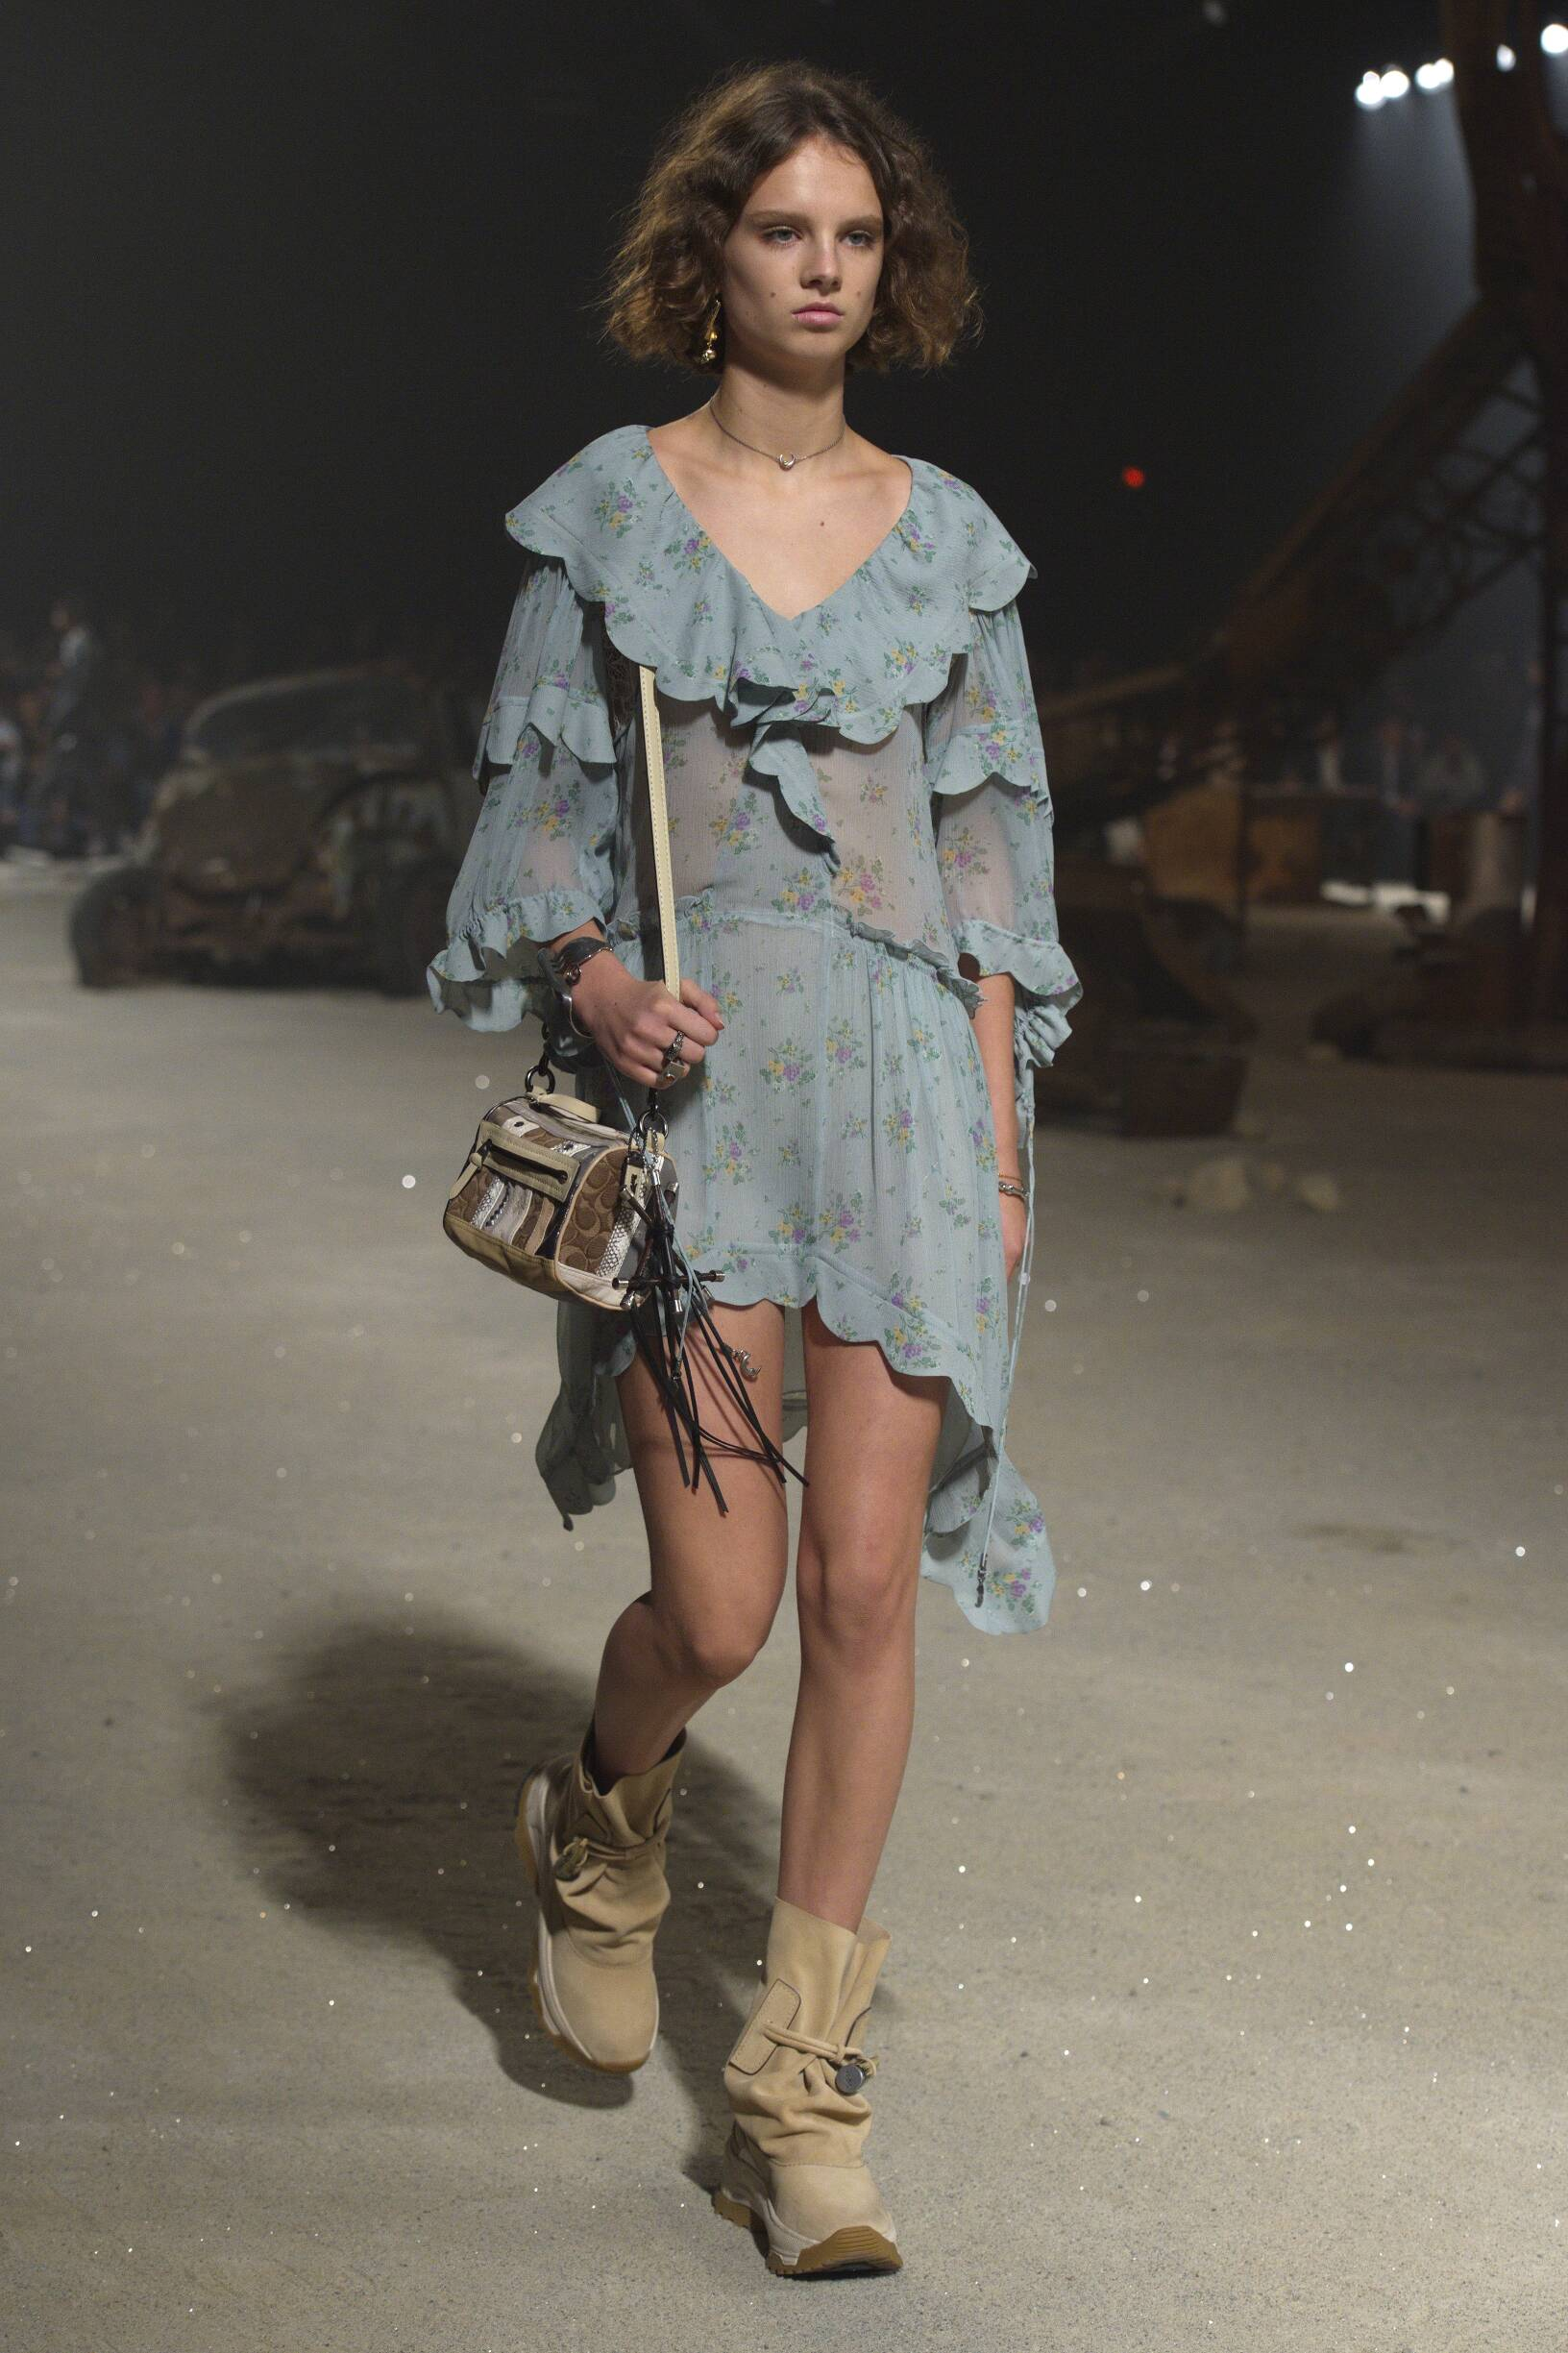 COACH SPRING SUMMER 2019 WOMEN'S COLLECTION | The Skinny Beep